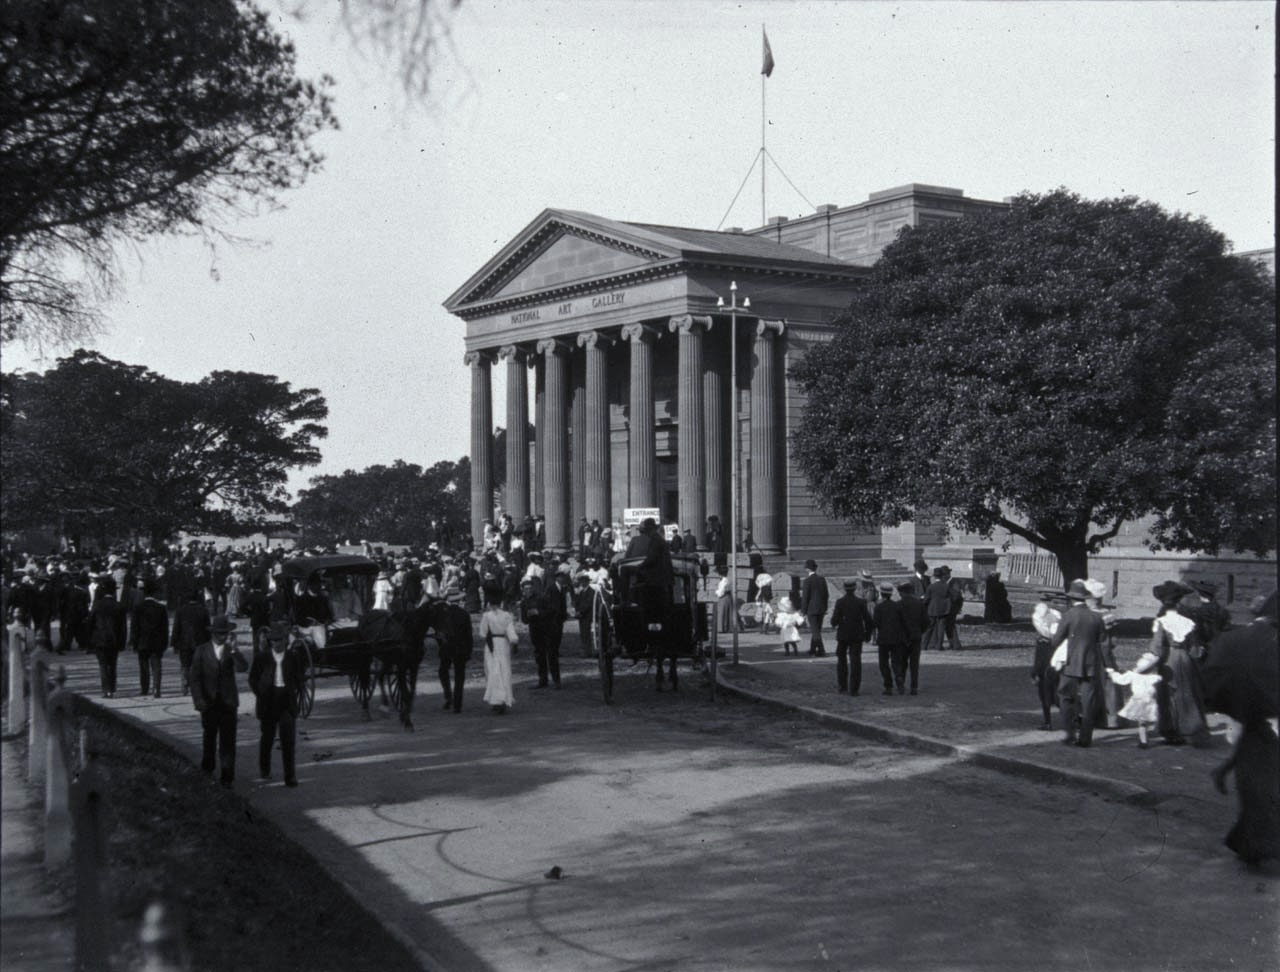 Crowds at the Gallery in 1906, Art Gallery of New South Wales archive